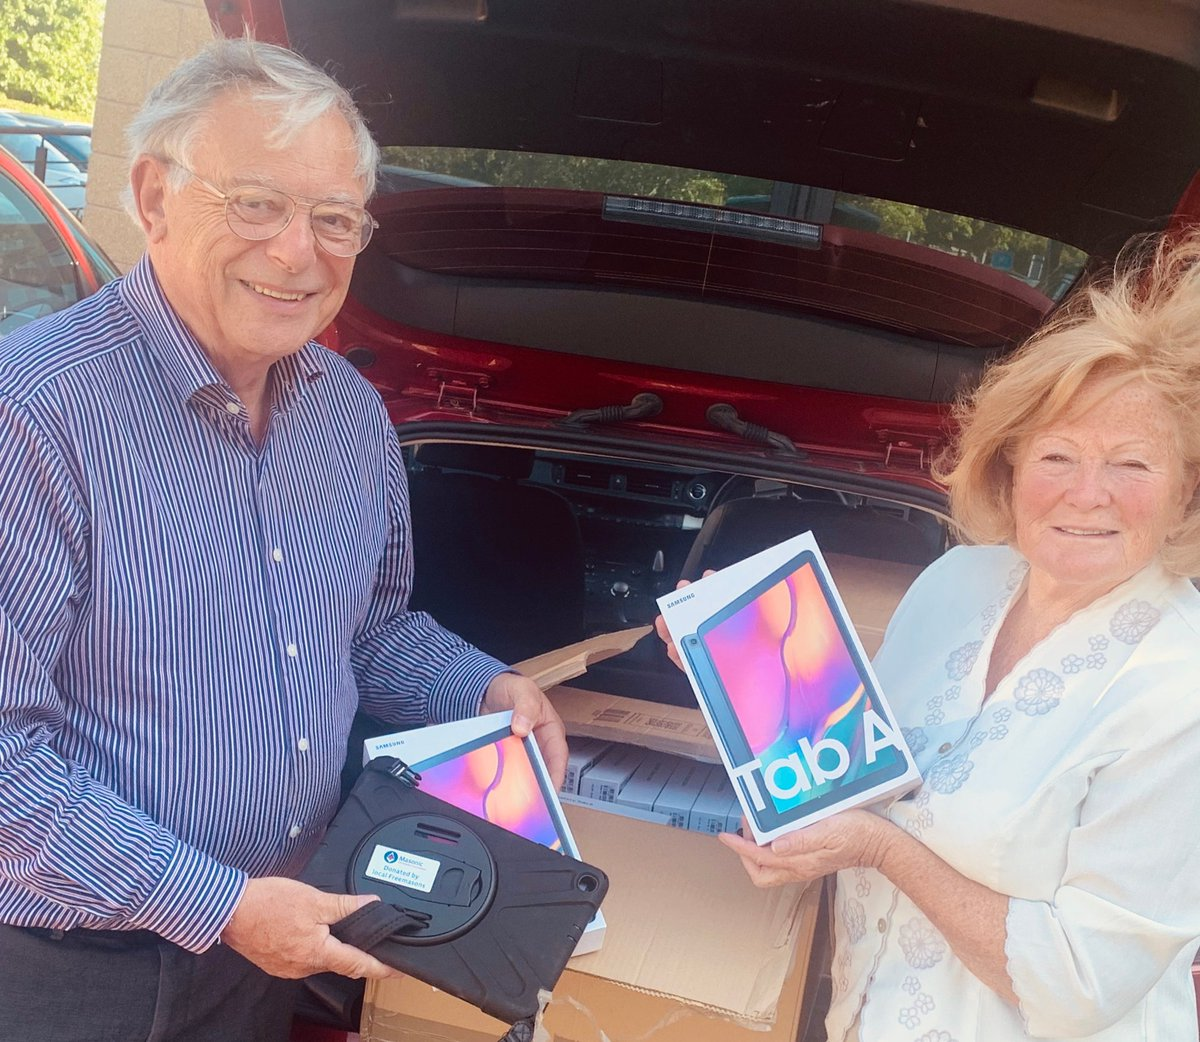 To support our patients with virtual visiting, enabling friends and families to stay in touch with loved ones, @WorcsMasons have donated 30 samsung tablets that will be used throughout our COVID wards @WorcsAcuteNHS